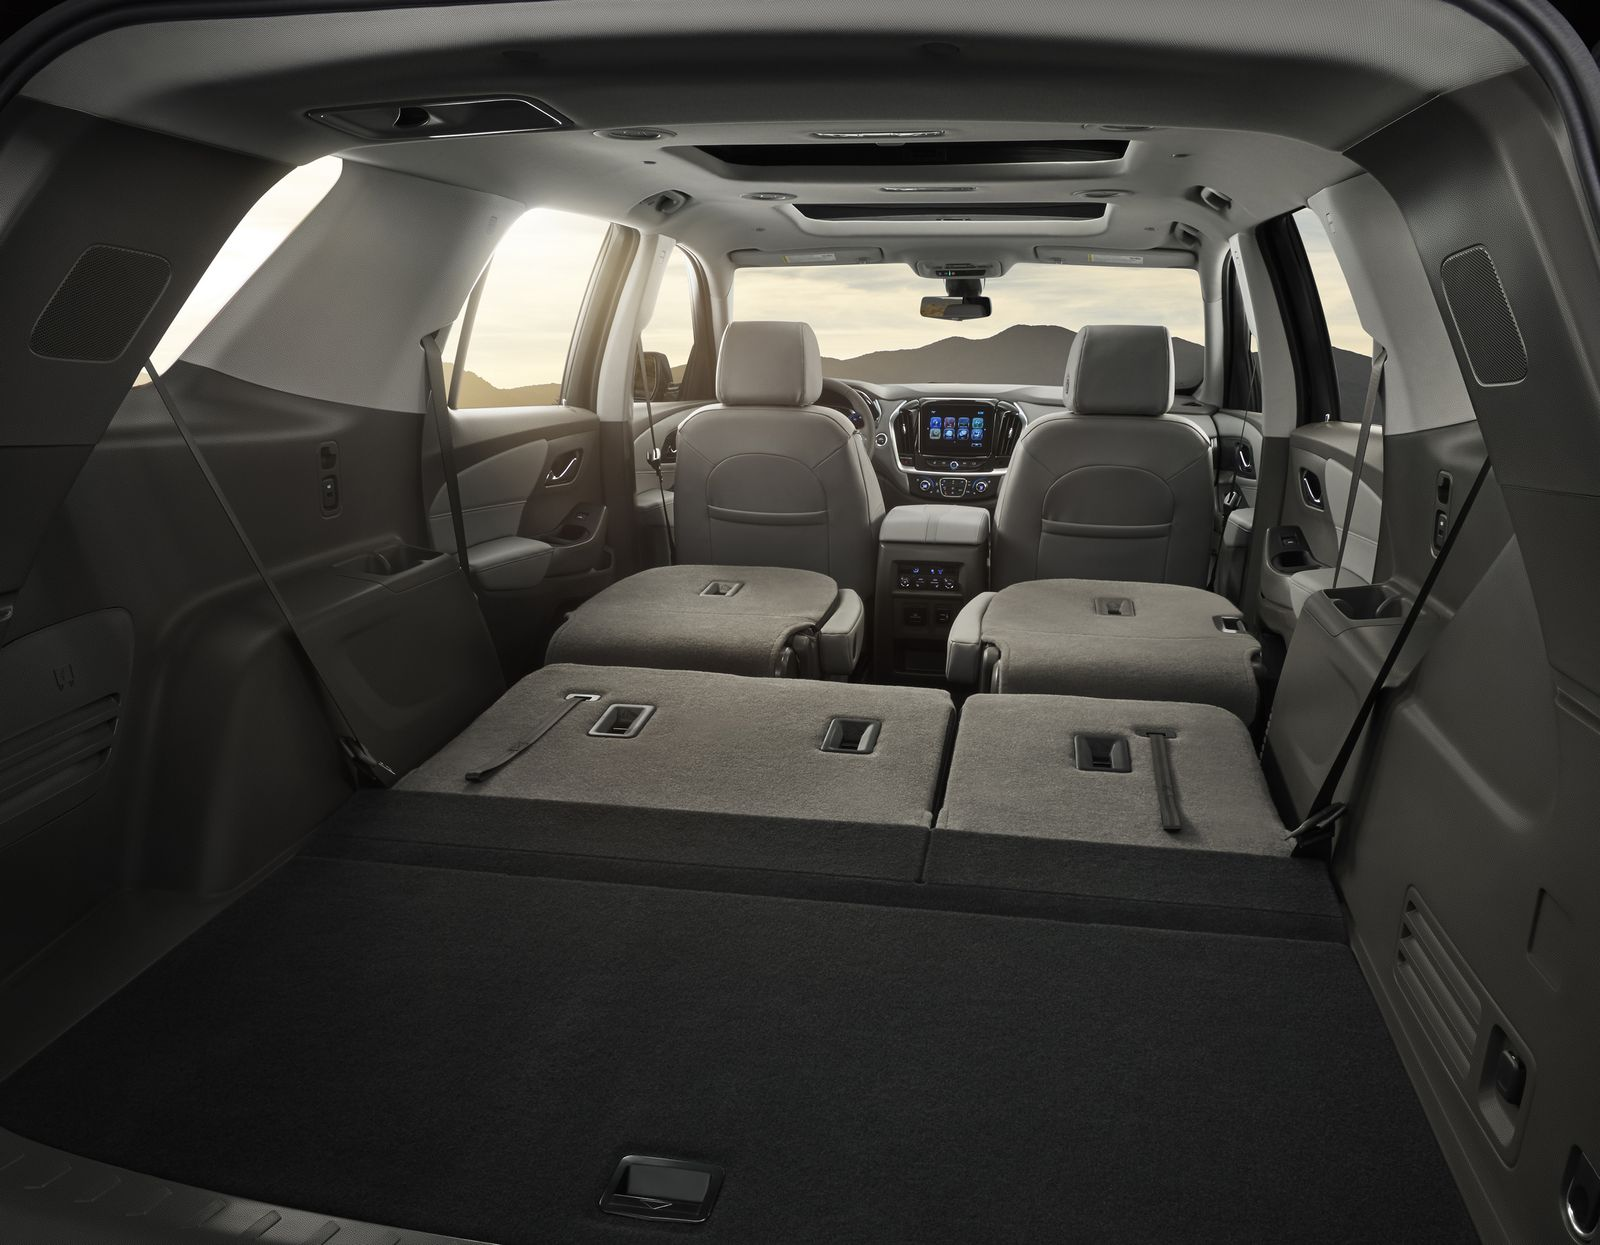 The 2018 Traverse is expected to offer best-in-class passenger volume as well as max cargo room at 98.5 cubic feet (2,789 liters), while greater storage options and larger bins throughout the ergonomically optimized cabin are designed to enhance convenience and versatility.